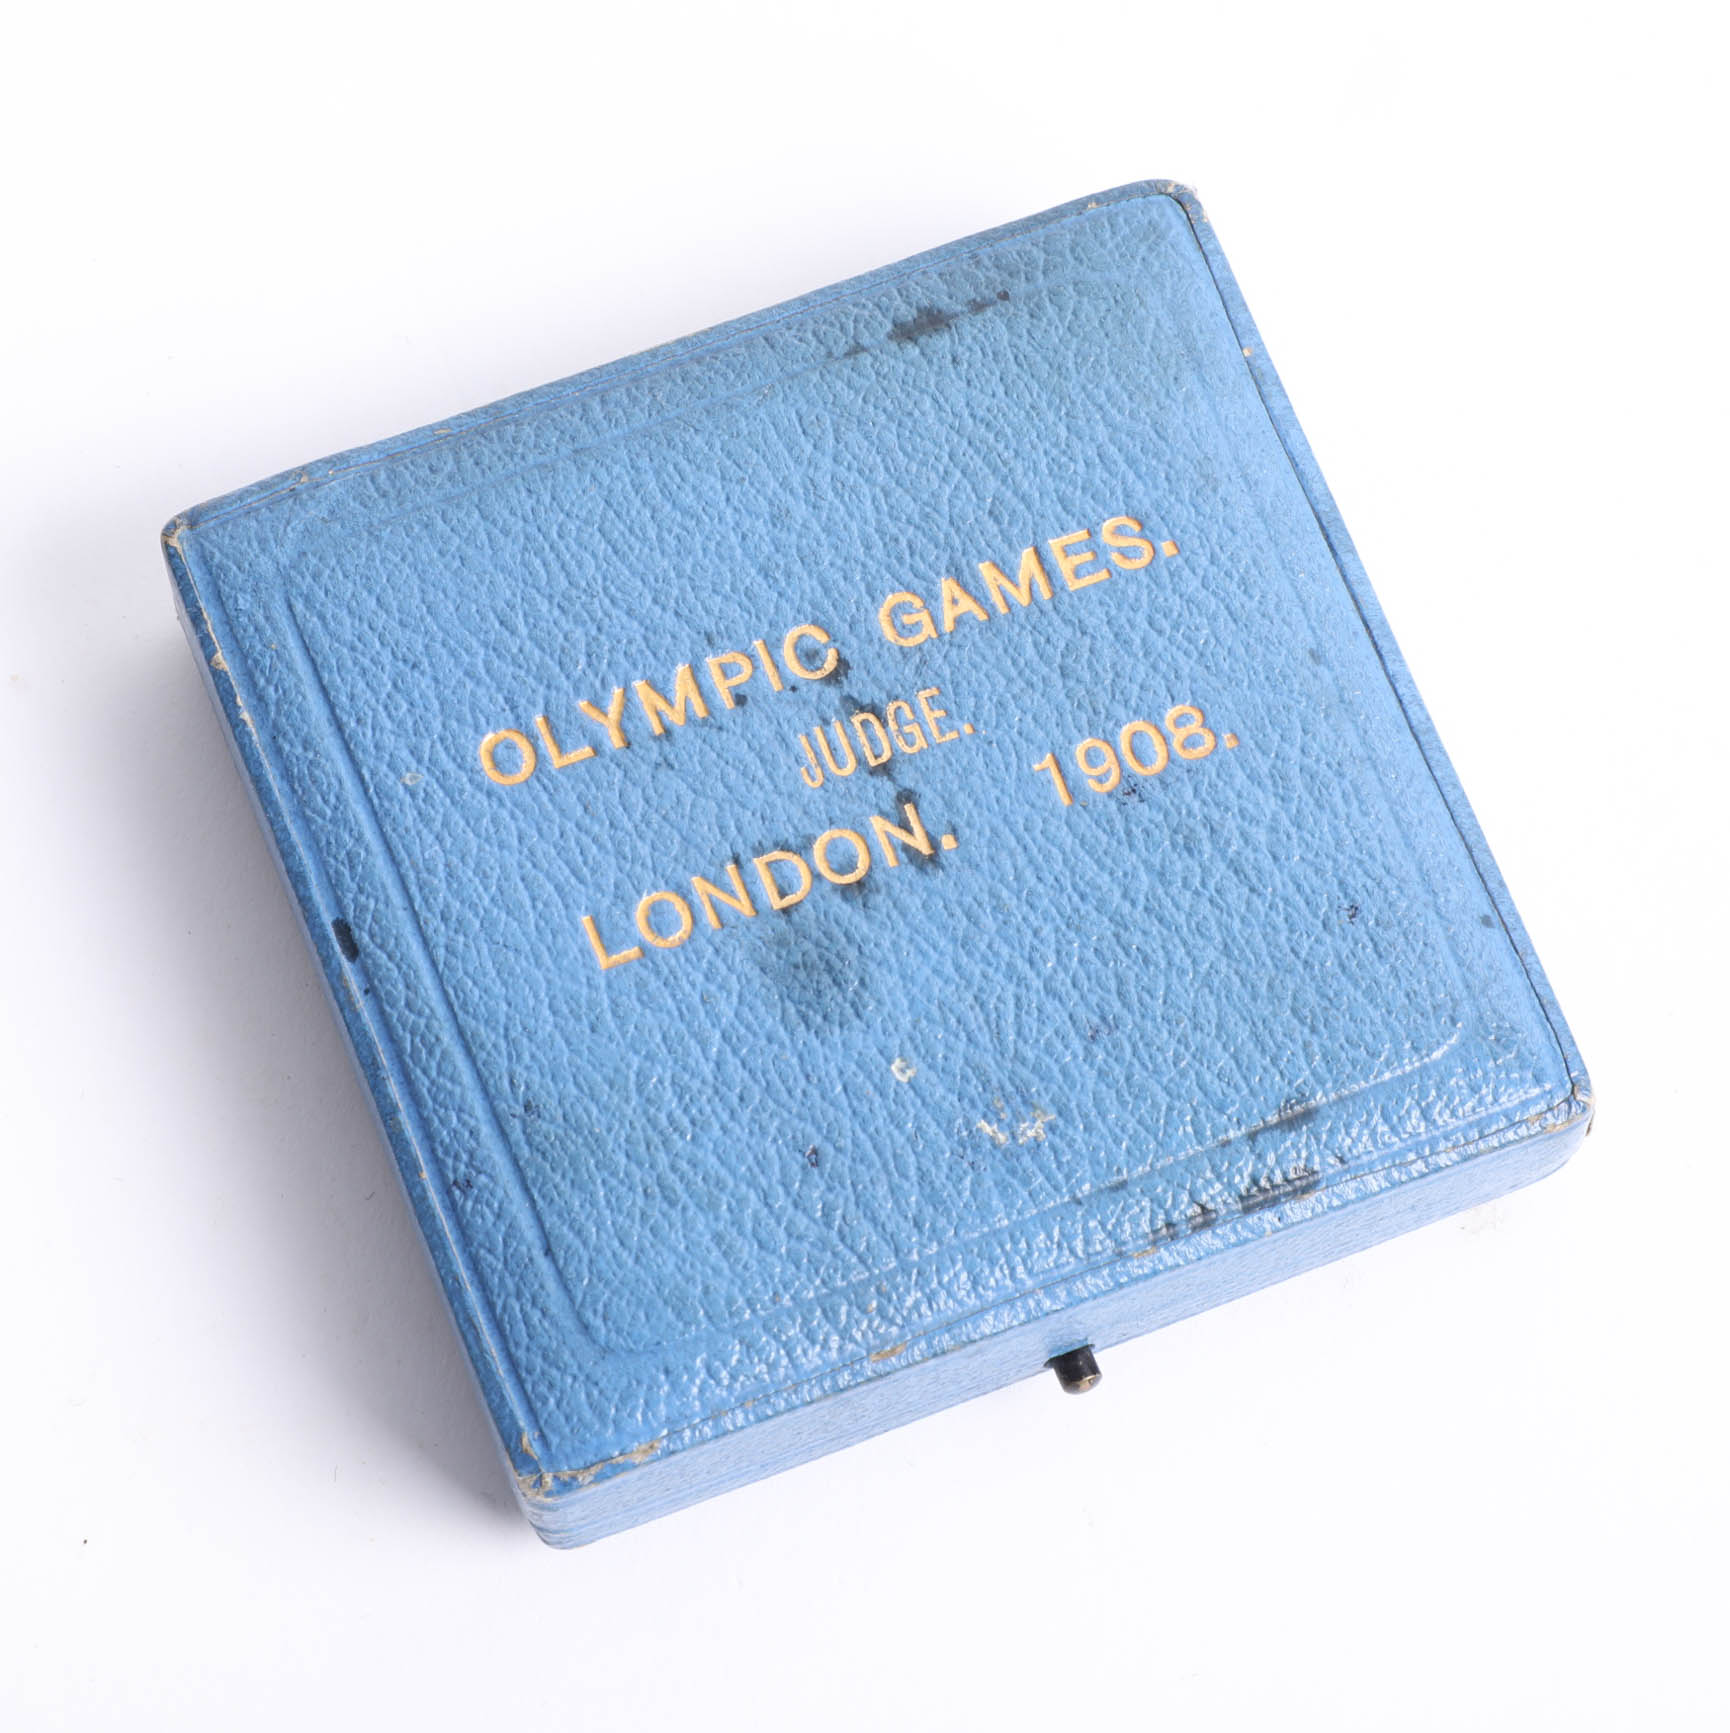 A London Olympics 1908 Judge`s commemorative medal by P. Vaughton, the obverse depicting 'Flame'